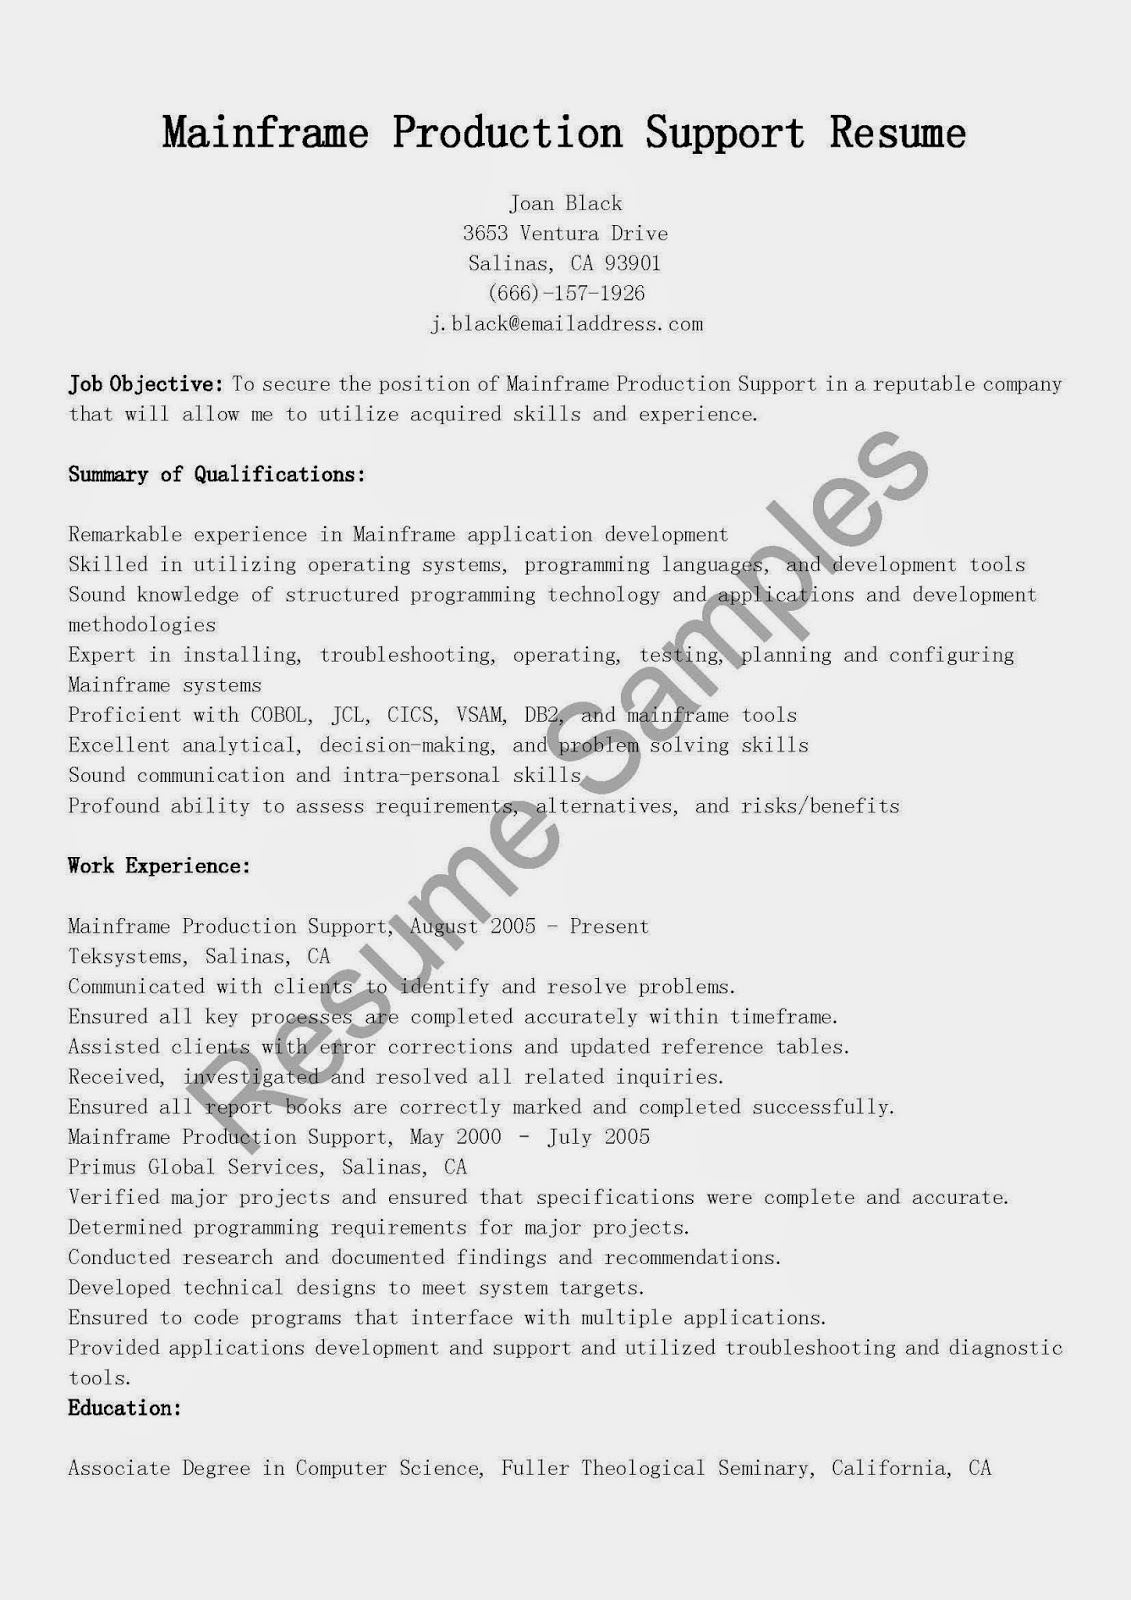 resume samples  mainframe production support resume sample